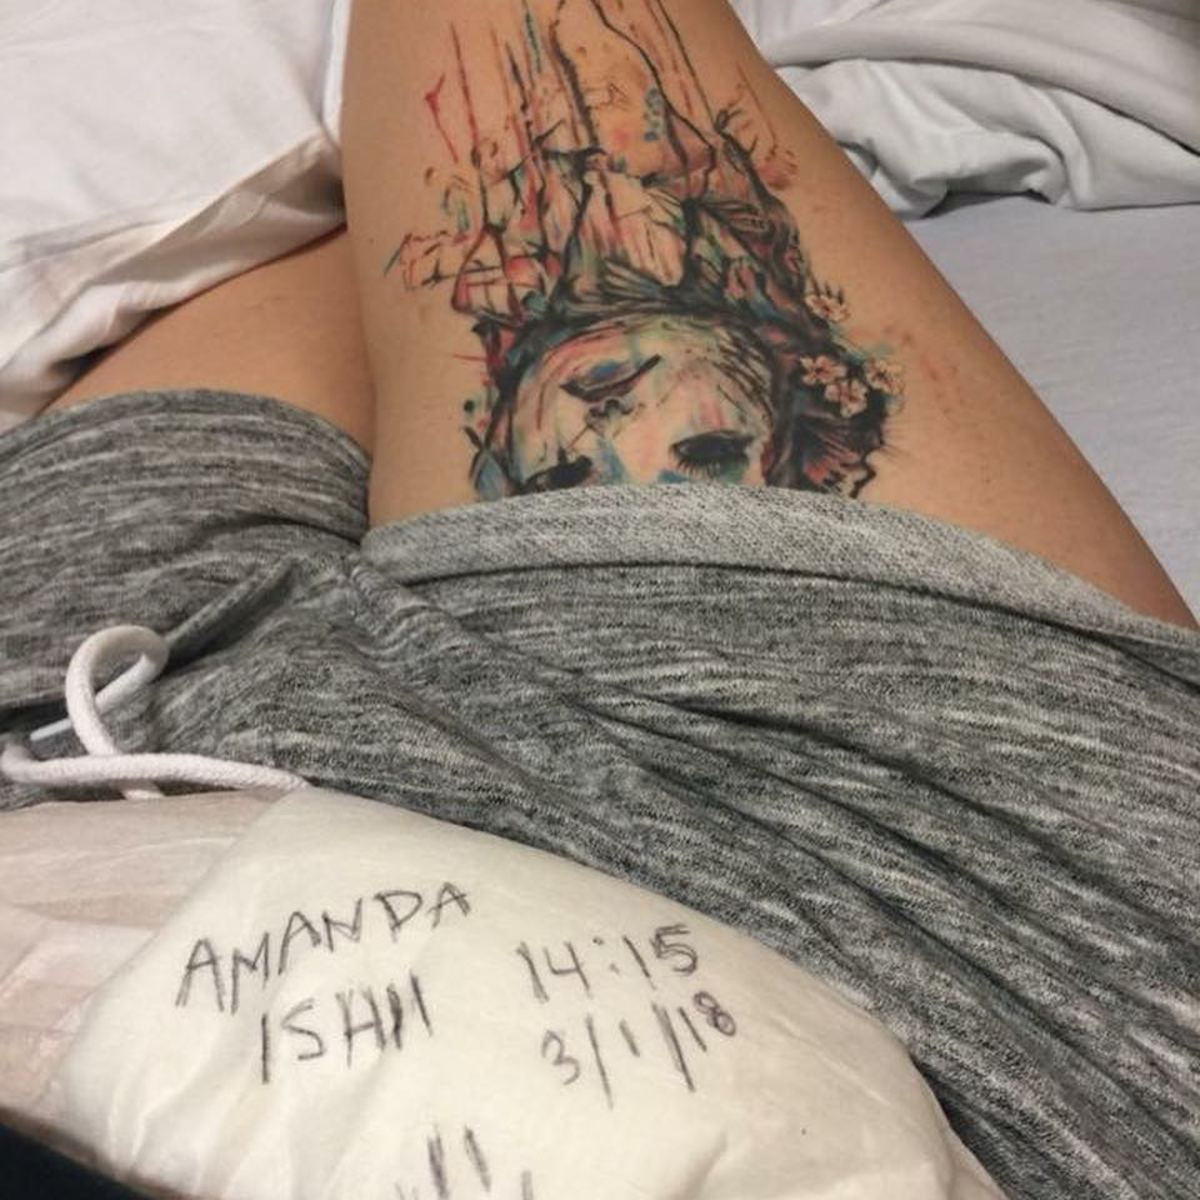 girl with tattoo on leg and ostomy bag